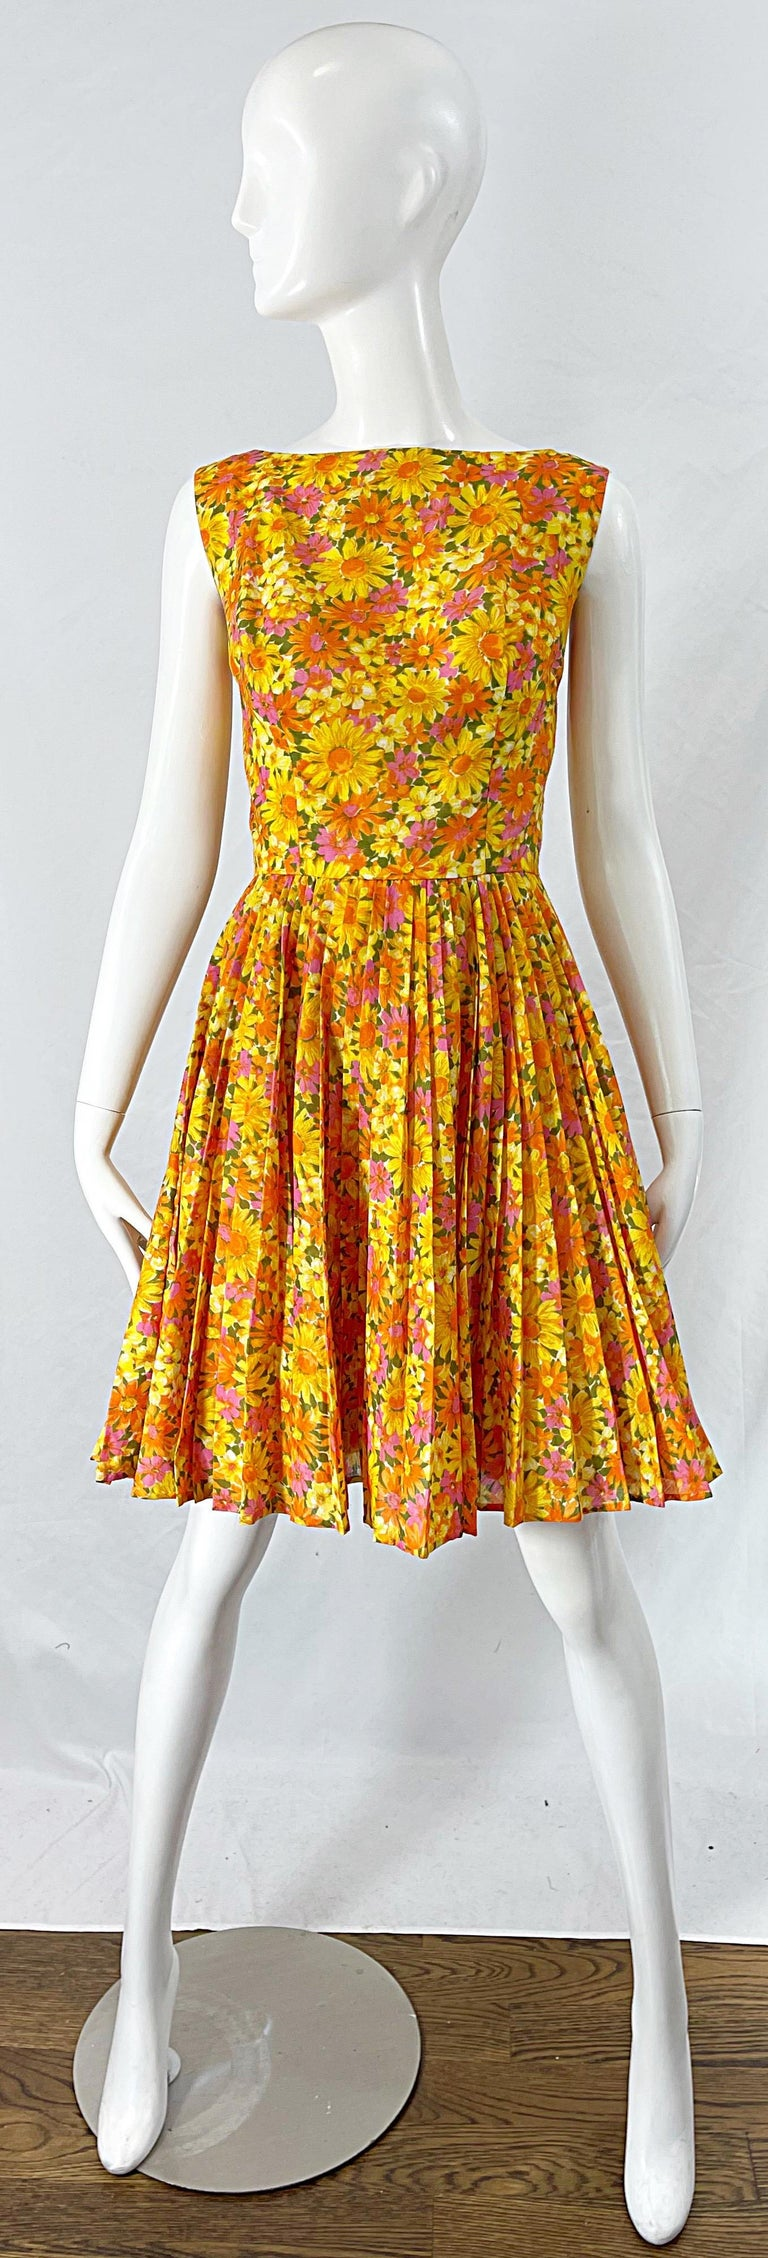 Chic 1950s SUZY PERETTE yellow, orange, pink and green daisy flower print cotton fit n' flare dress ! Features an elegant high neck with a tailored bodice and forgiving full pleated skirt. Full metal zipper up the back with hook-and-eye closure.